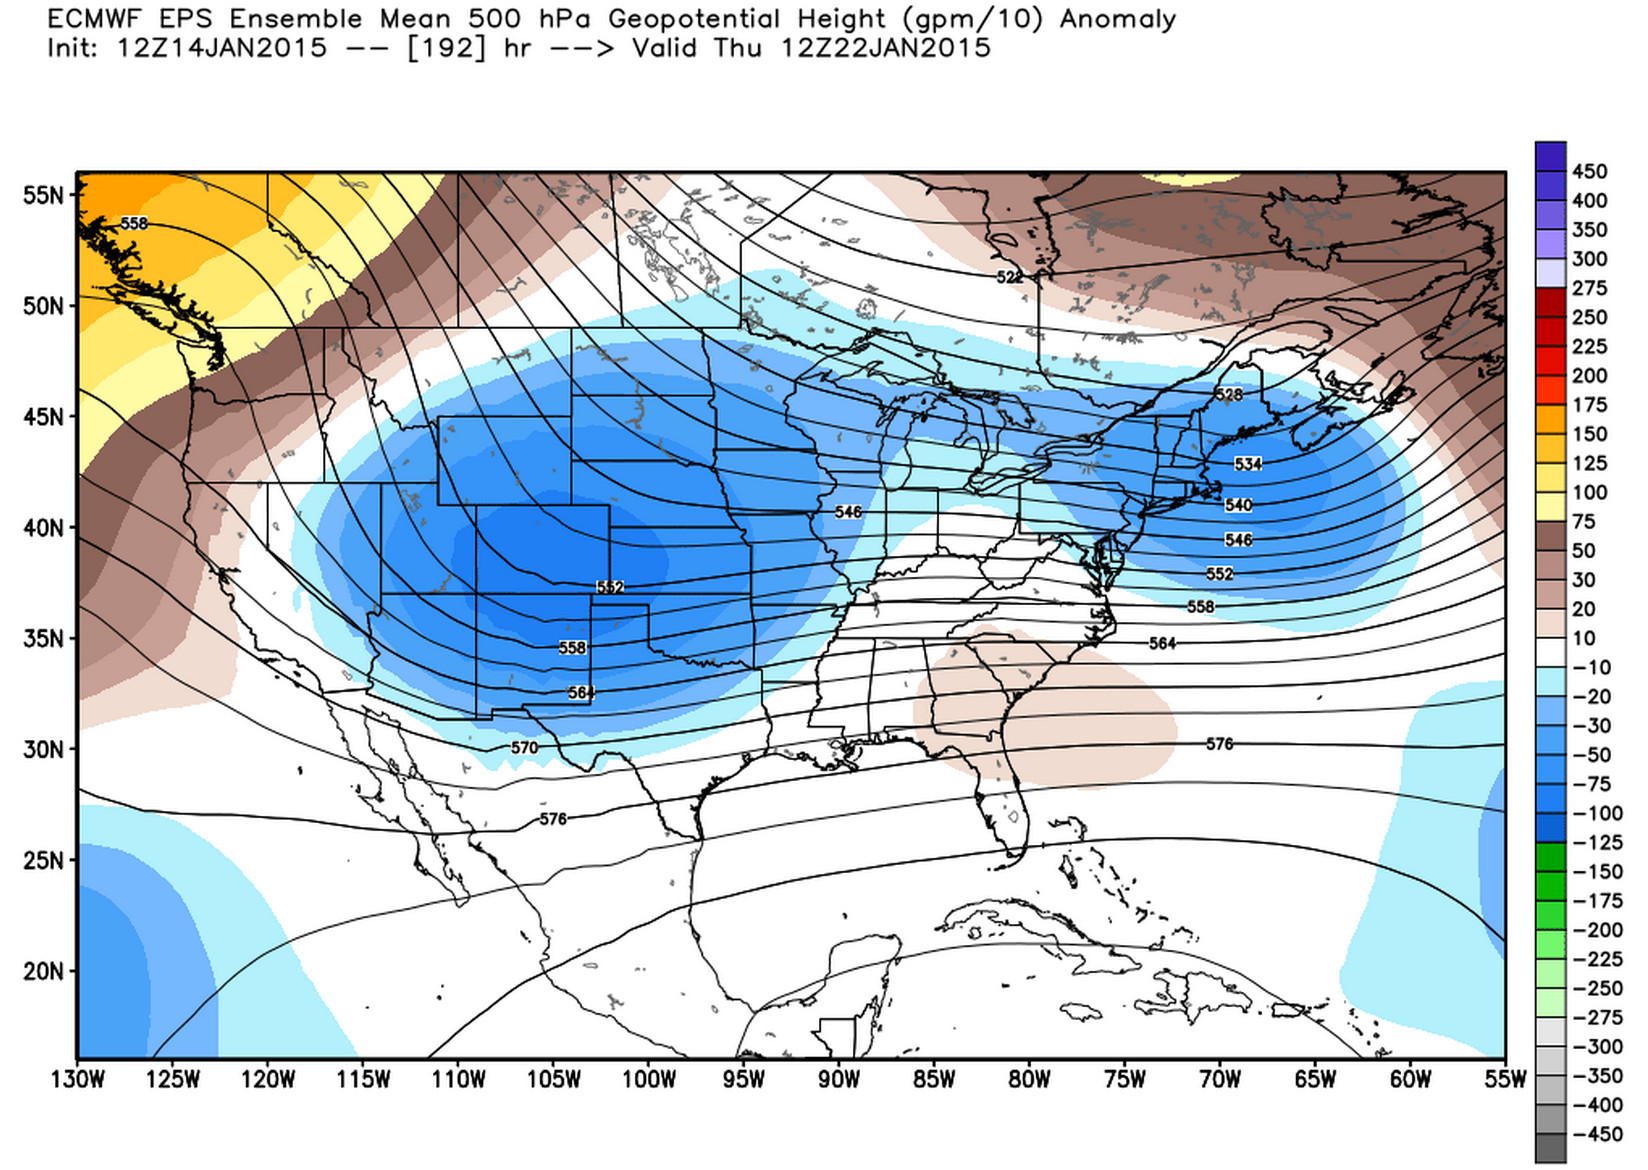 12z ECMWF EPS Ensemble Mean 500 hpa Geopotential Height   WeatherBell Analytics